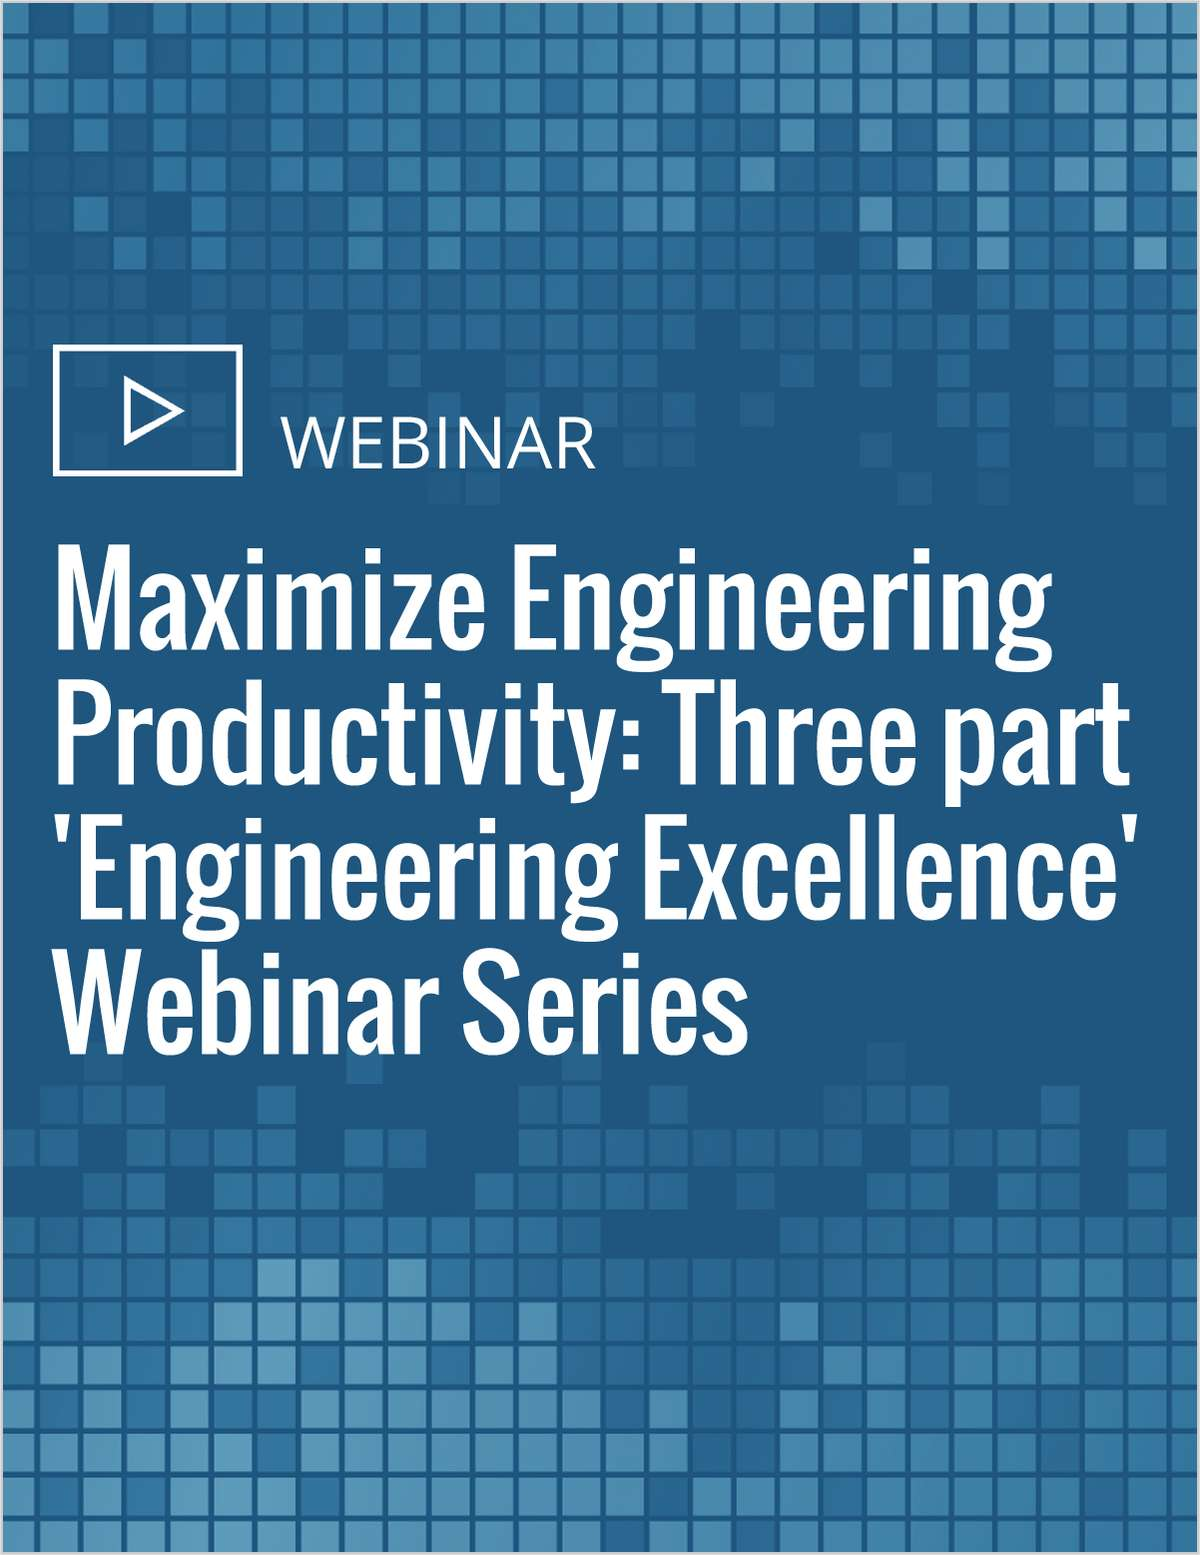 Maximize Engineering Productivity: Three part 'Engineering Excellence' Webinar Series